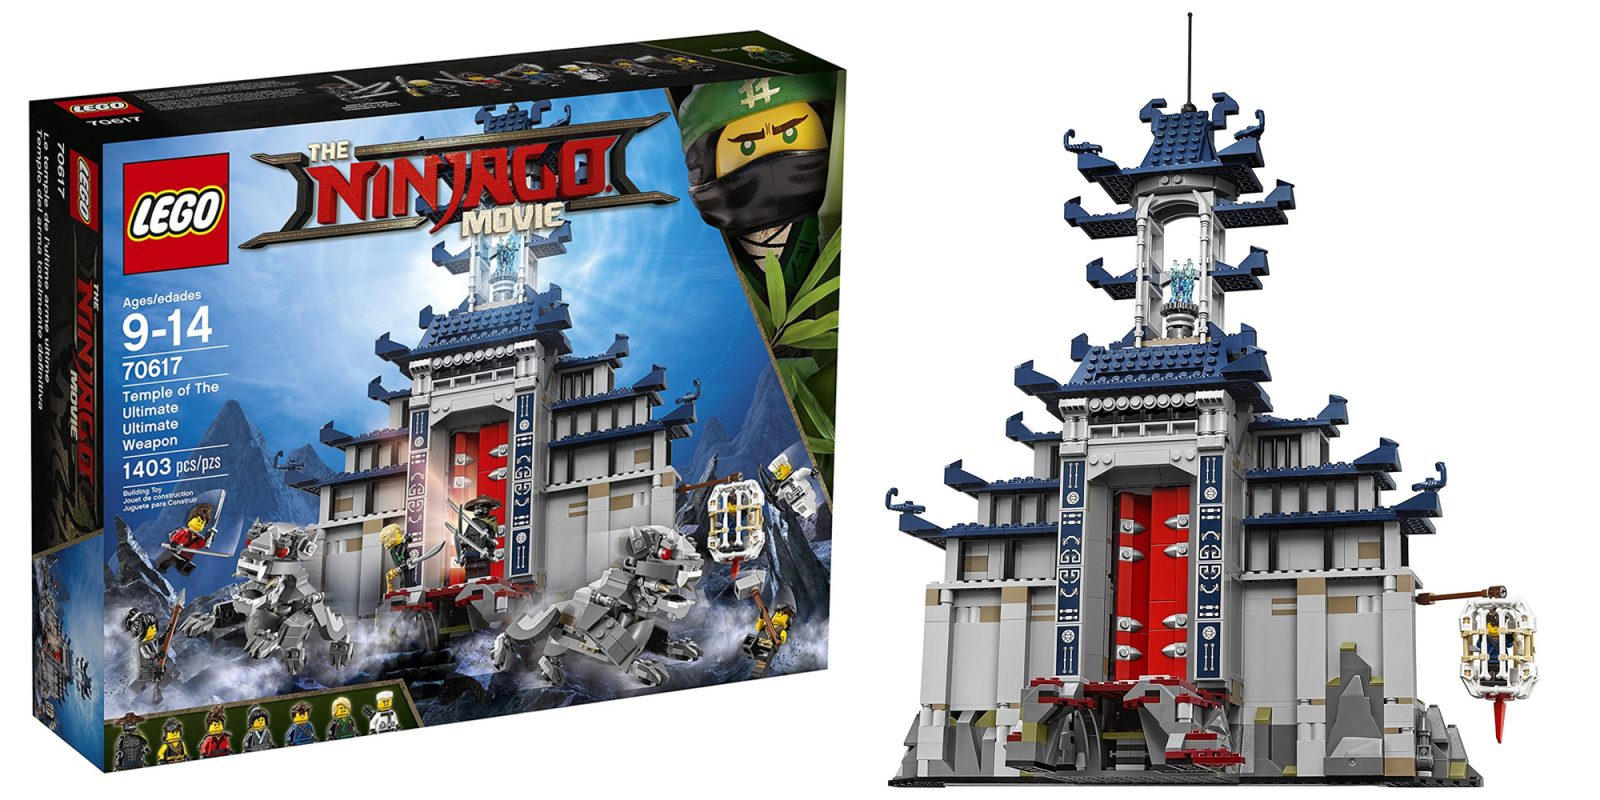 lego ninjago temple of the ultimate weapon kit for 80